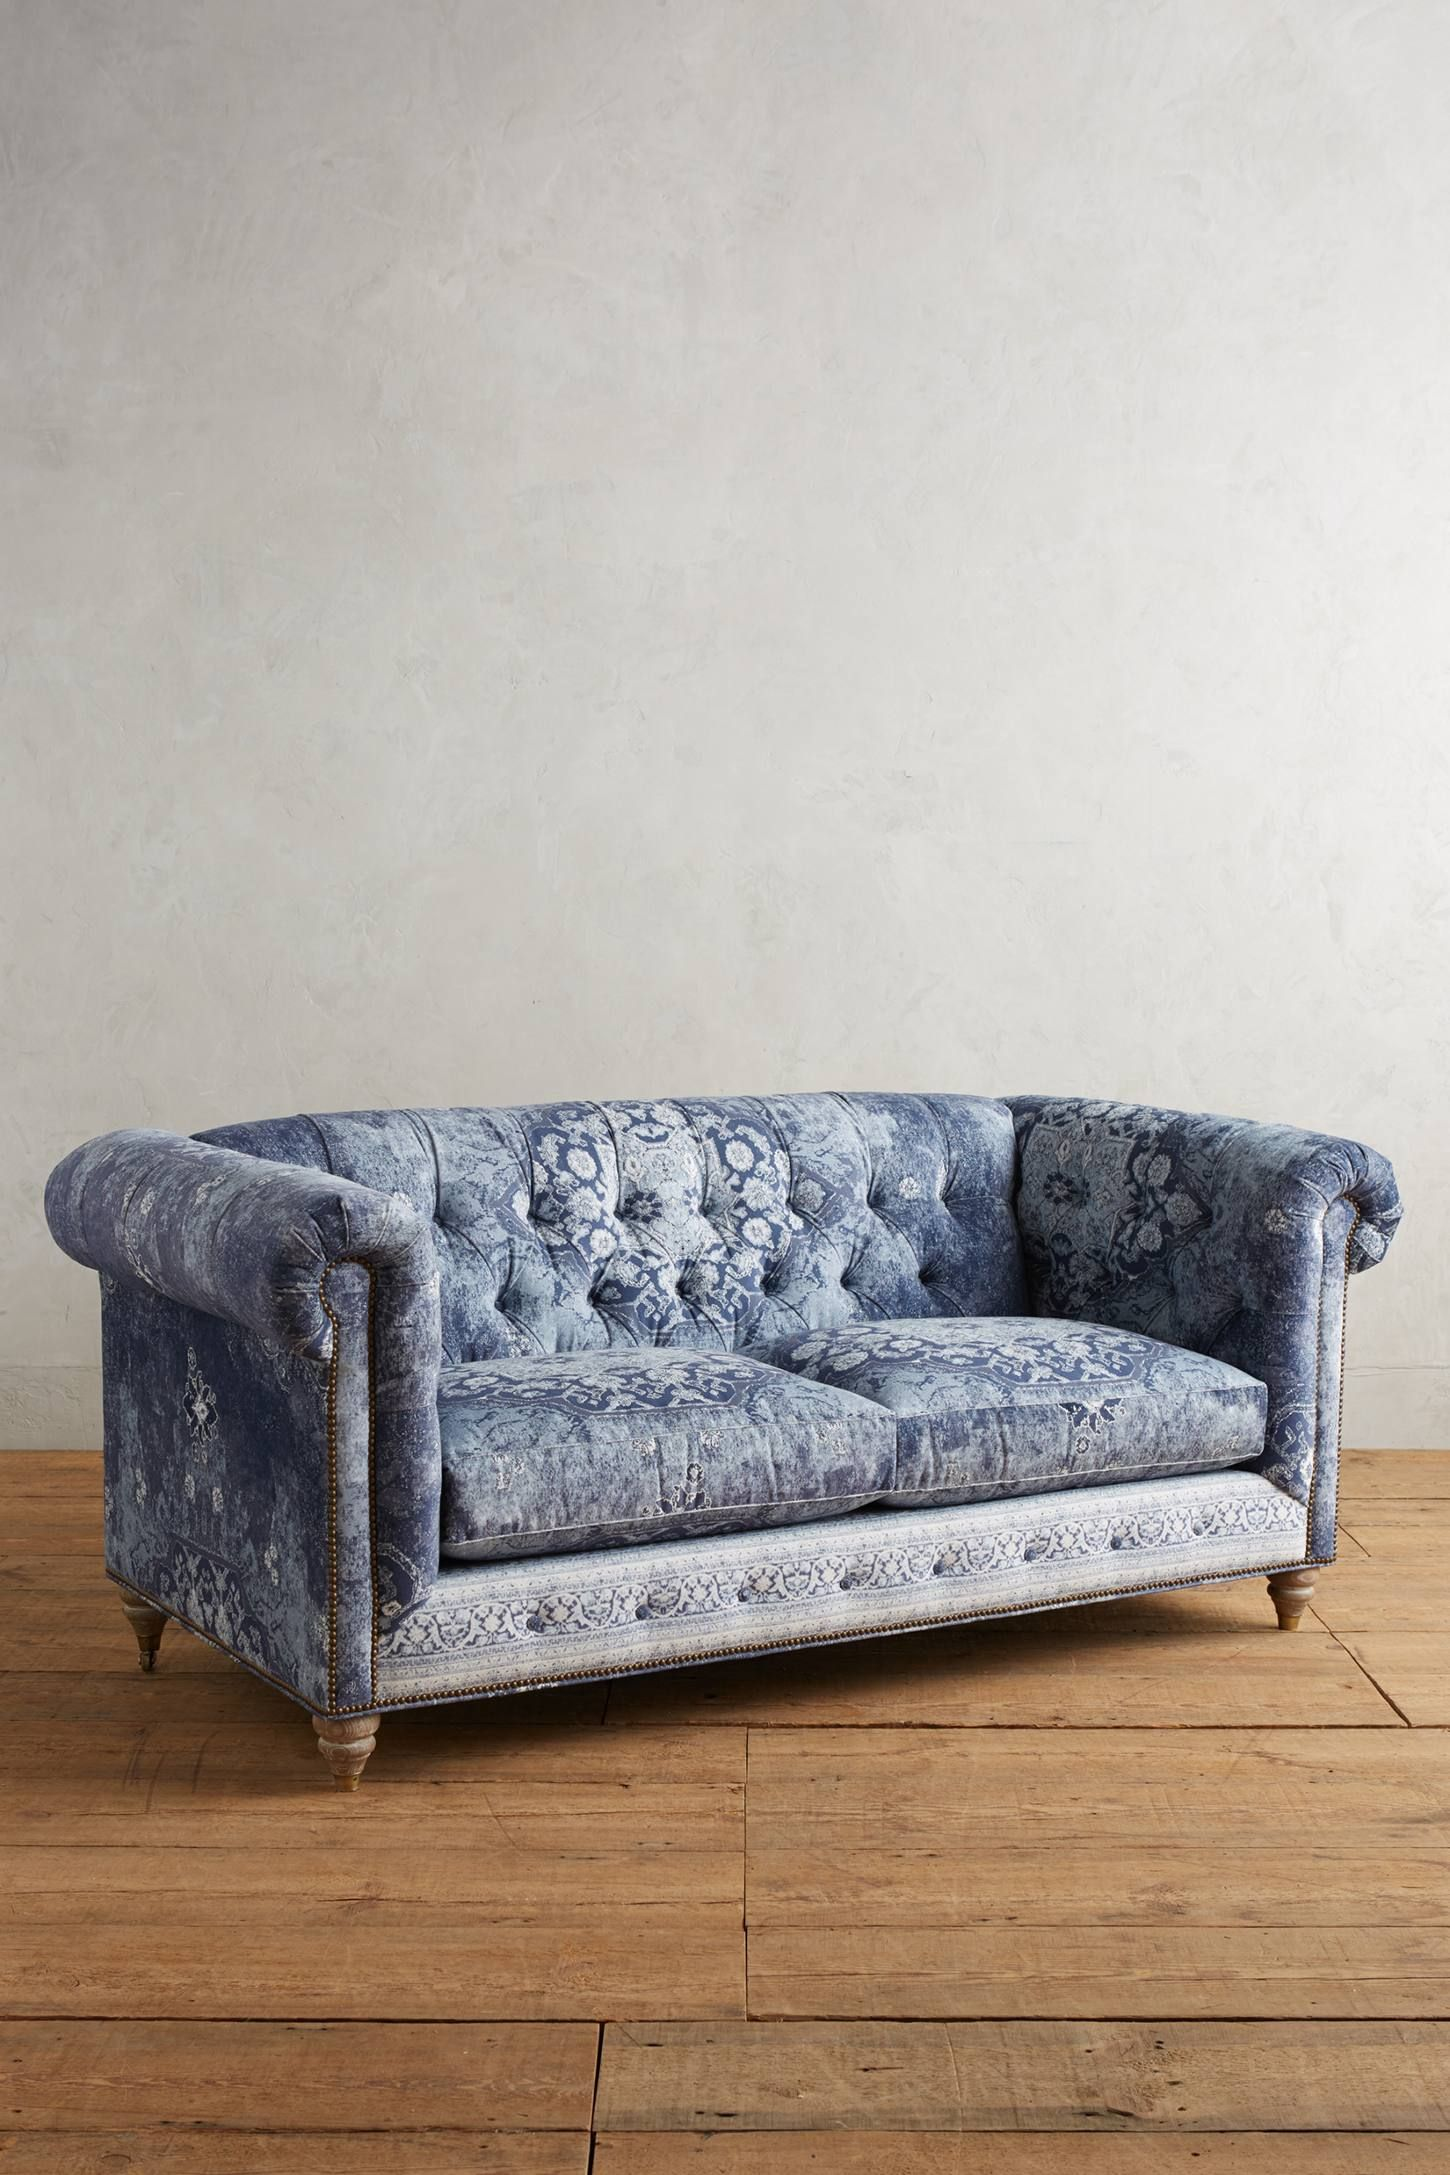 Charmant Shop The Rug Printed Lyre Chesterfield Petite Sofa And More Anthropologie  At Anthropologie Today. Read Customer Reviews, Discover Product Details And  More.